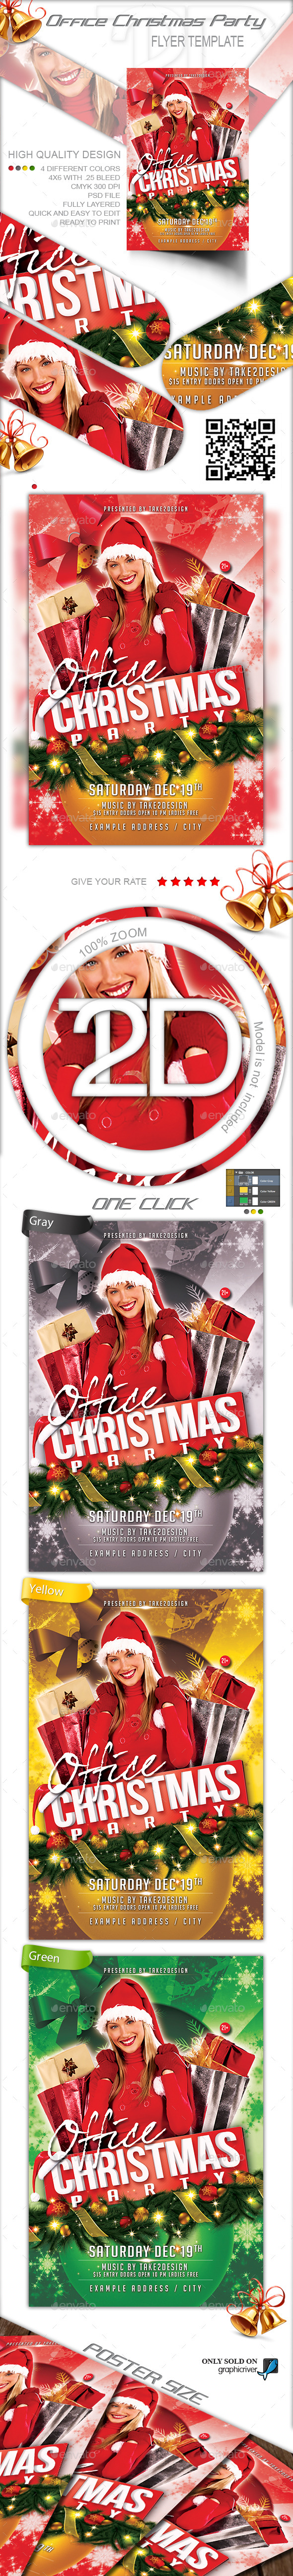 Christmas Office Party  - Clubs & Parties Events